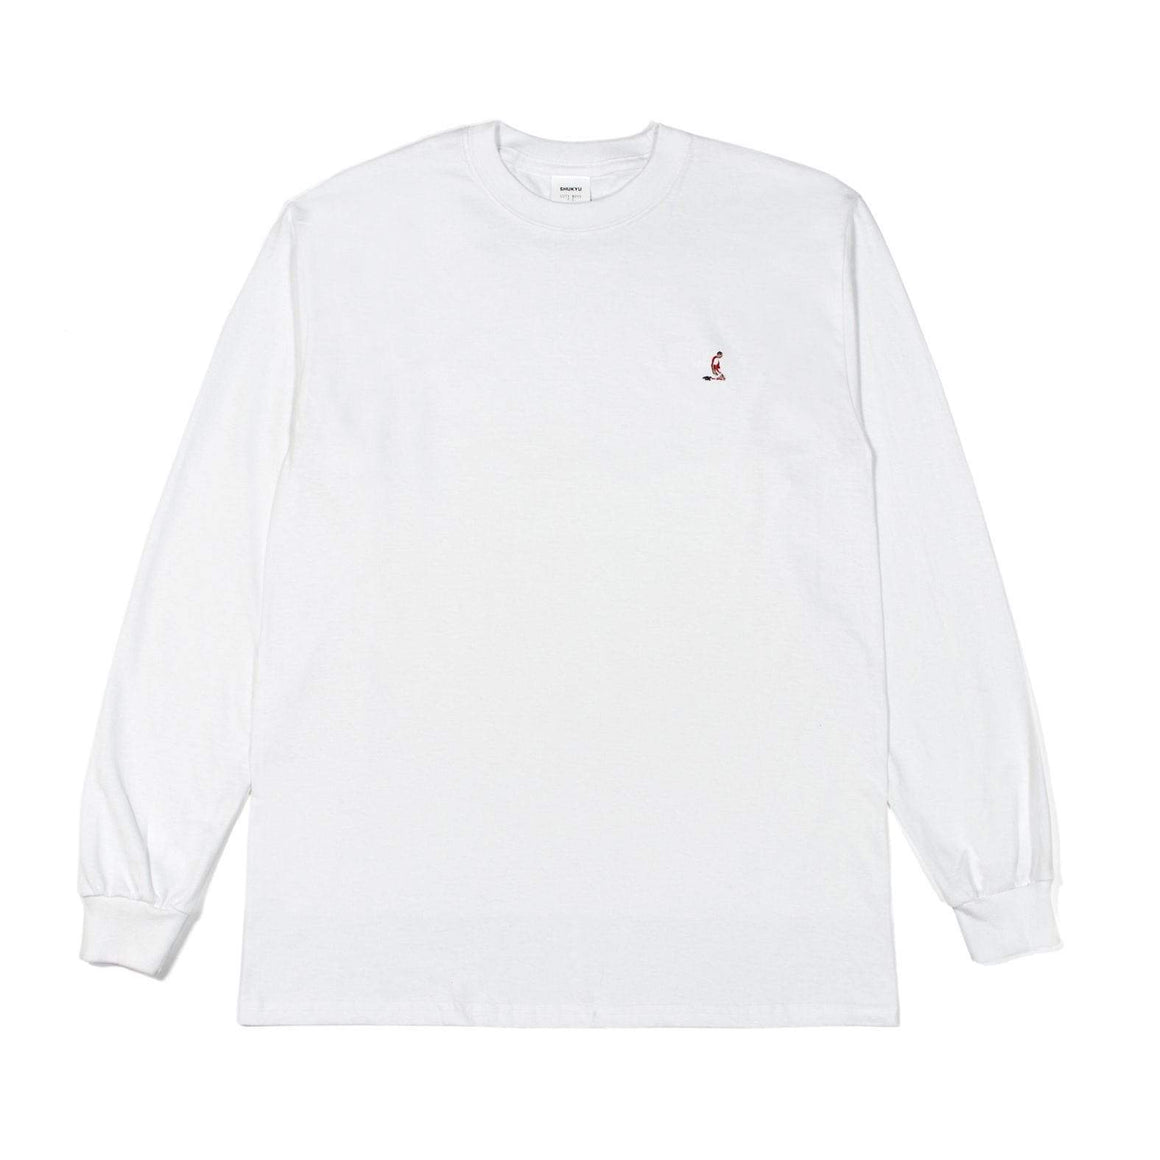 Titi City Boys FC x Shukyu Magazine long sleeve t-shirt (White) | Arsenal Thierry Henry - Football Shirt Collective